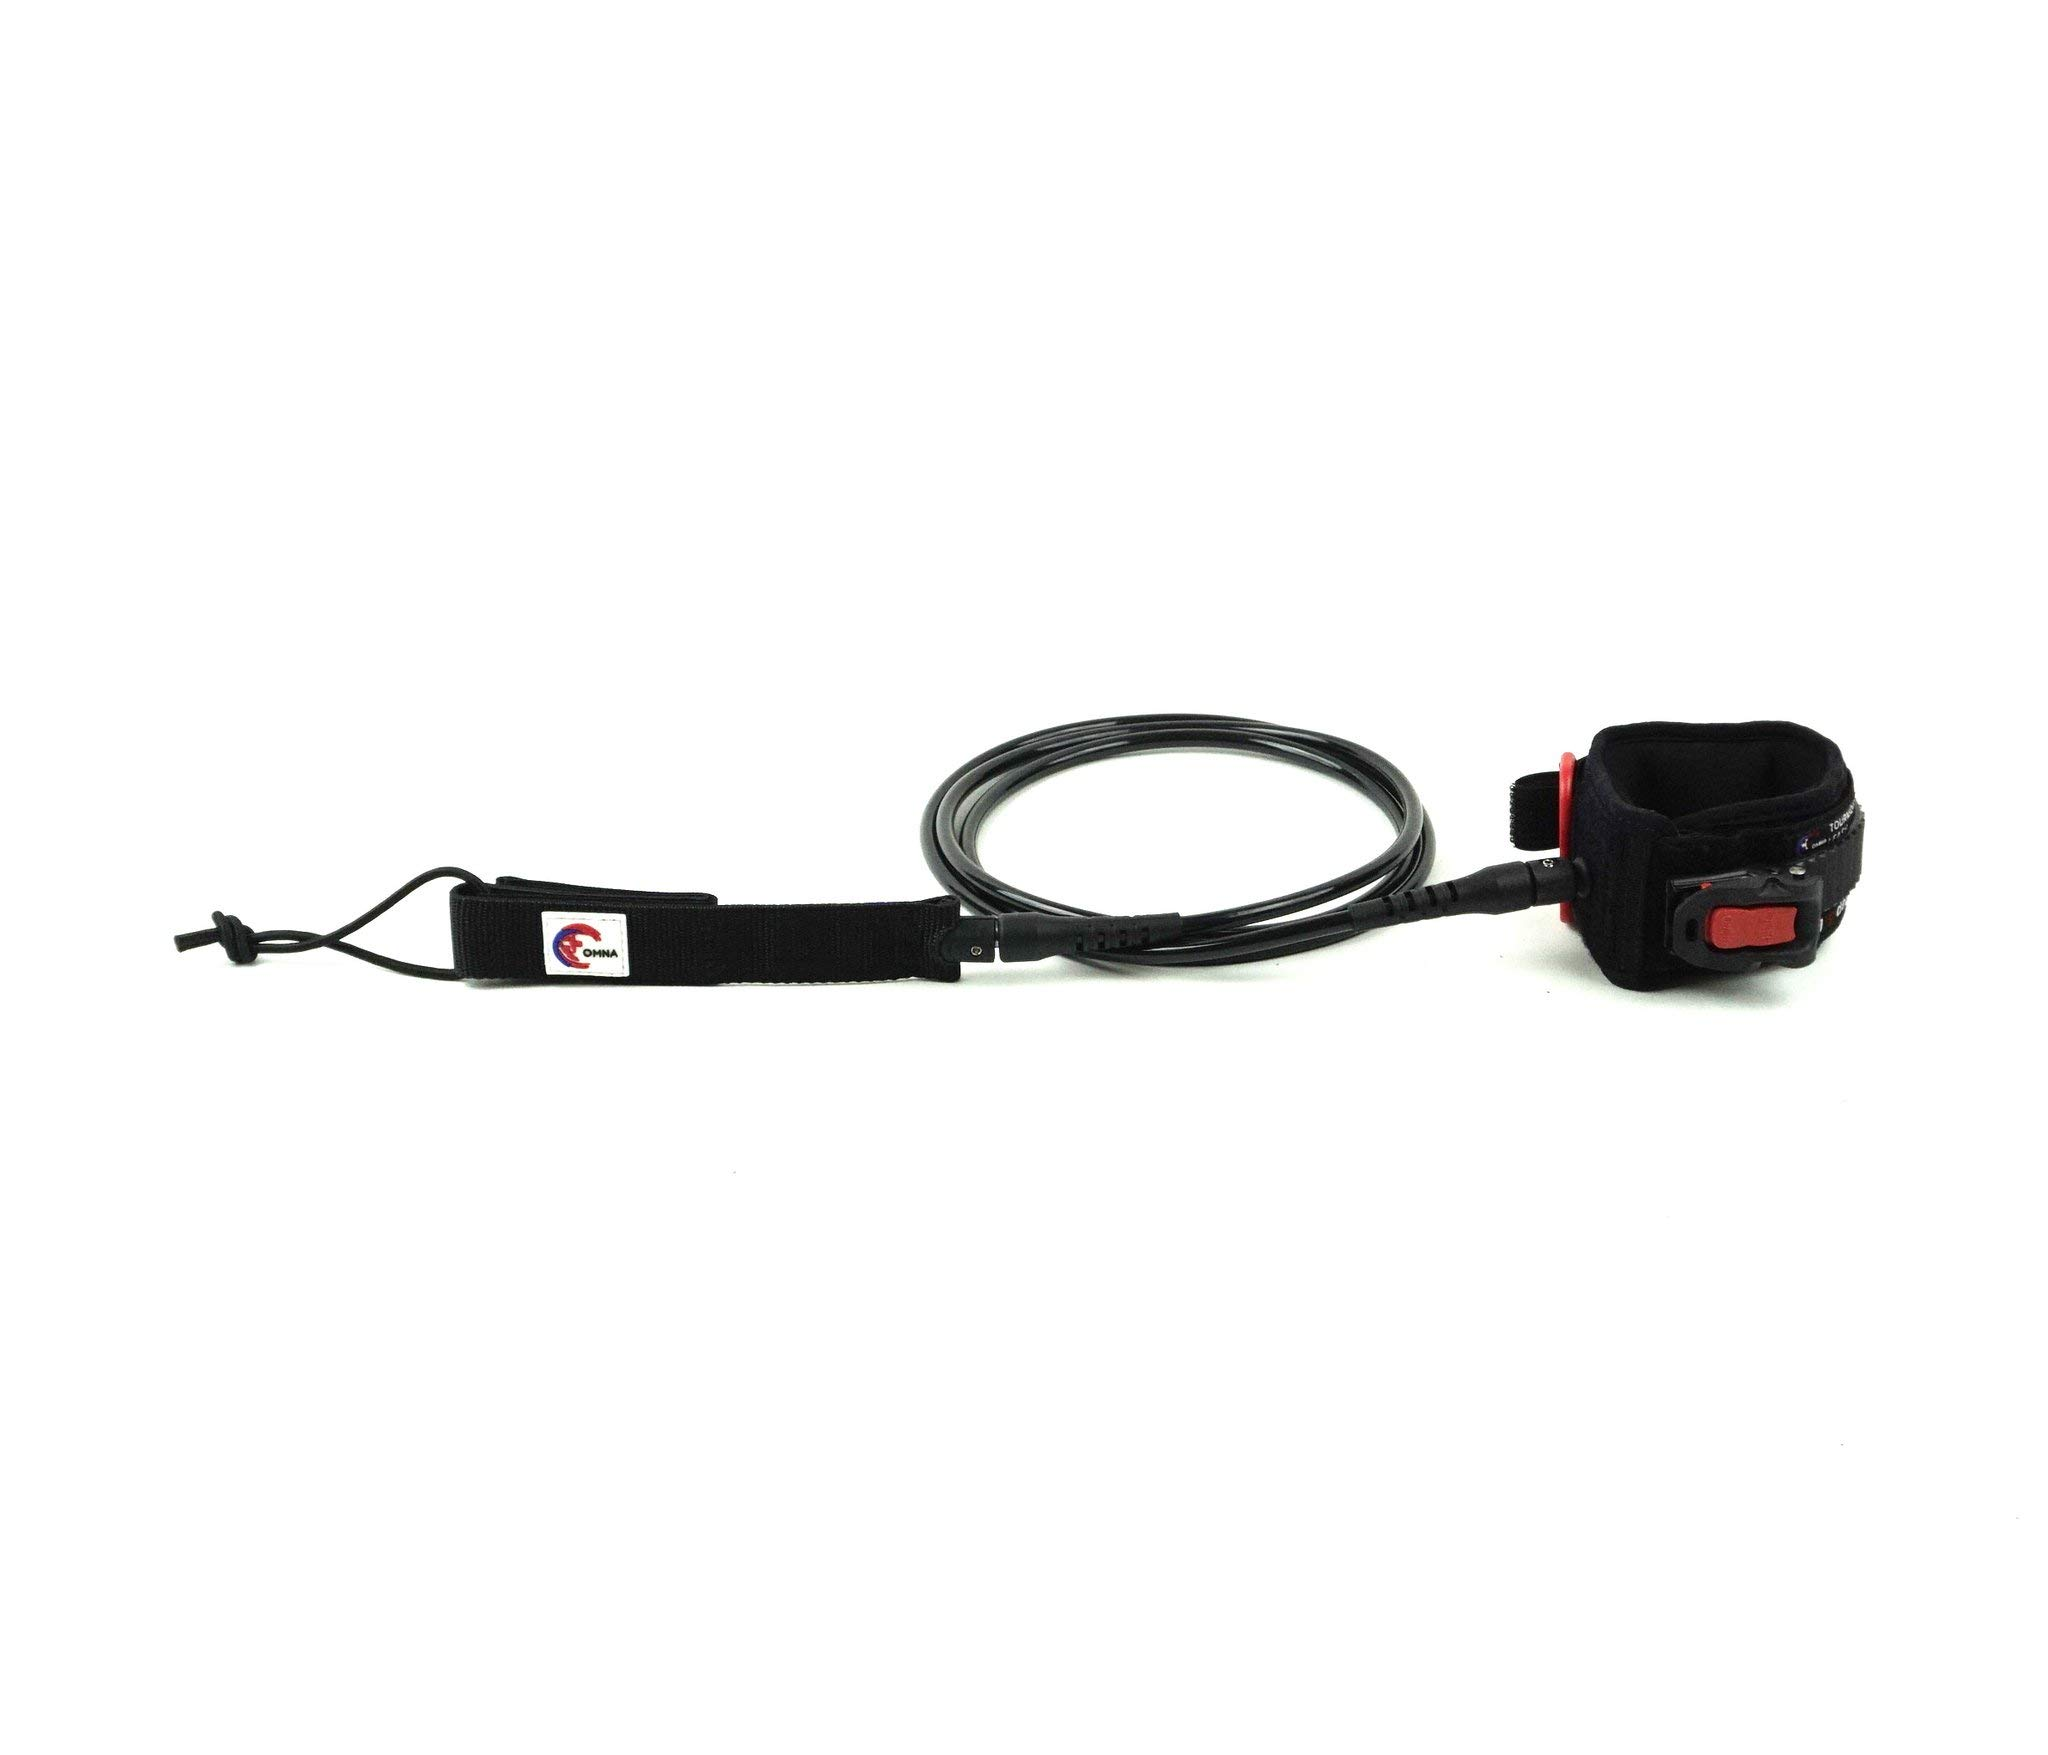 OMNA Tourniquet Shortboard Surfboard Leash by OMNA